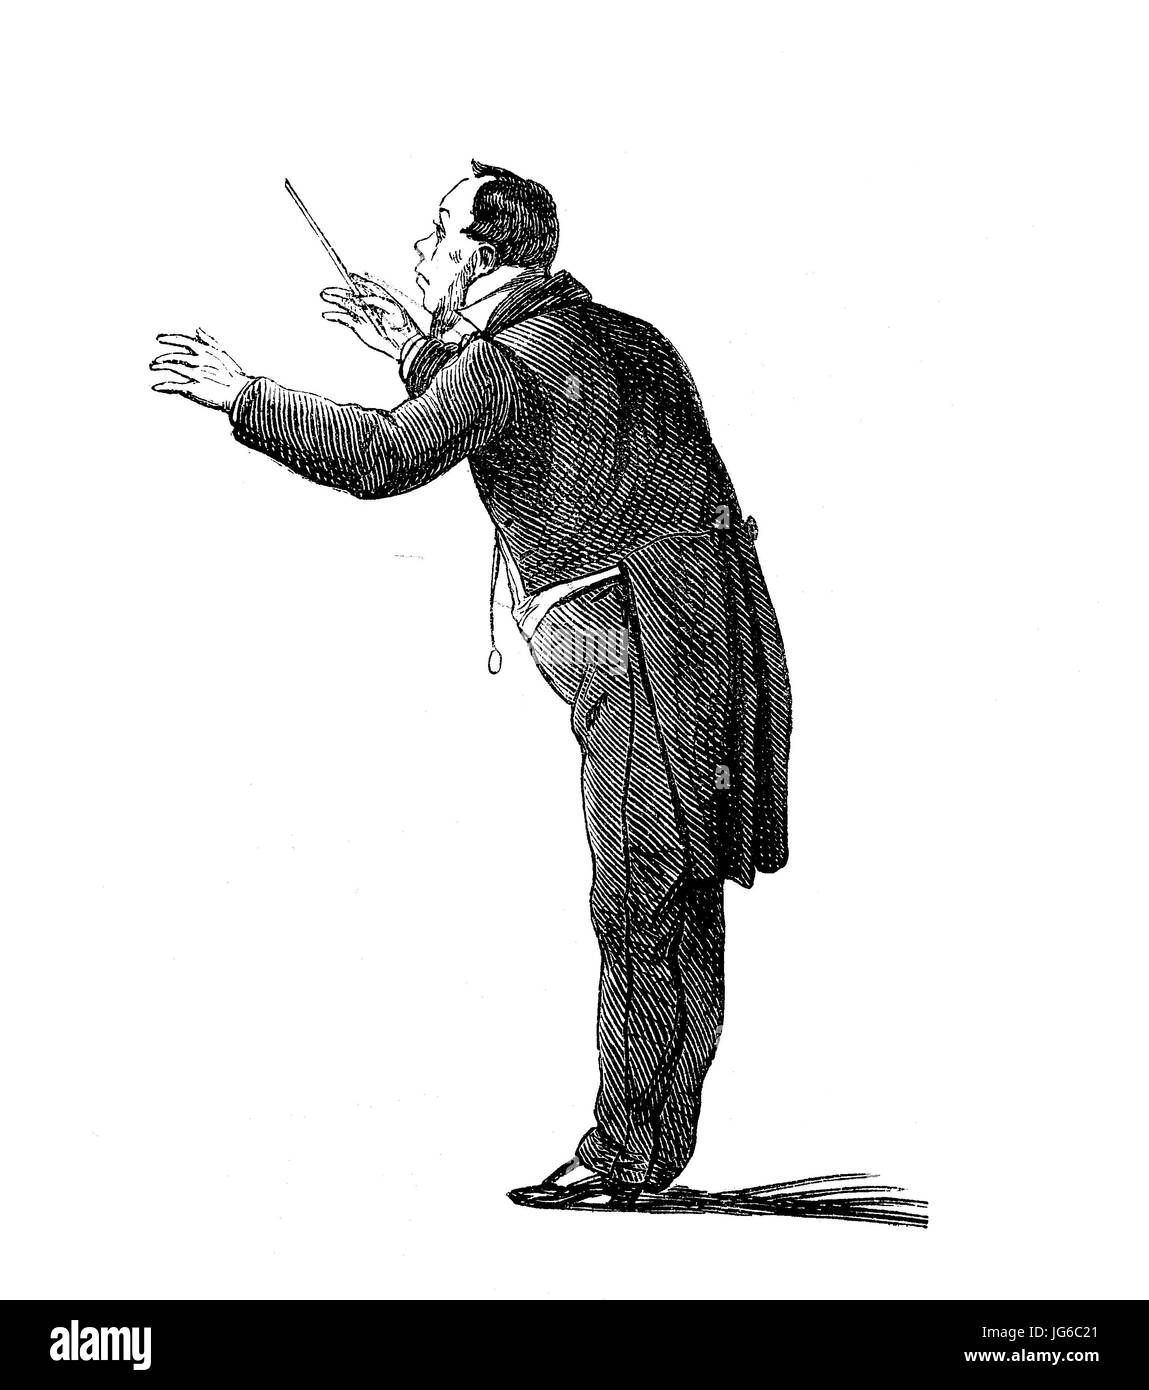 Digital improved:, Conductor, various movements in the conducting of an orchestra, illustration from the 19th century Stock Photo